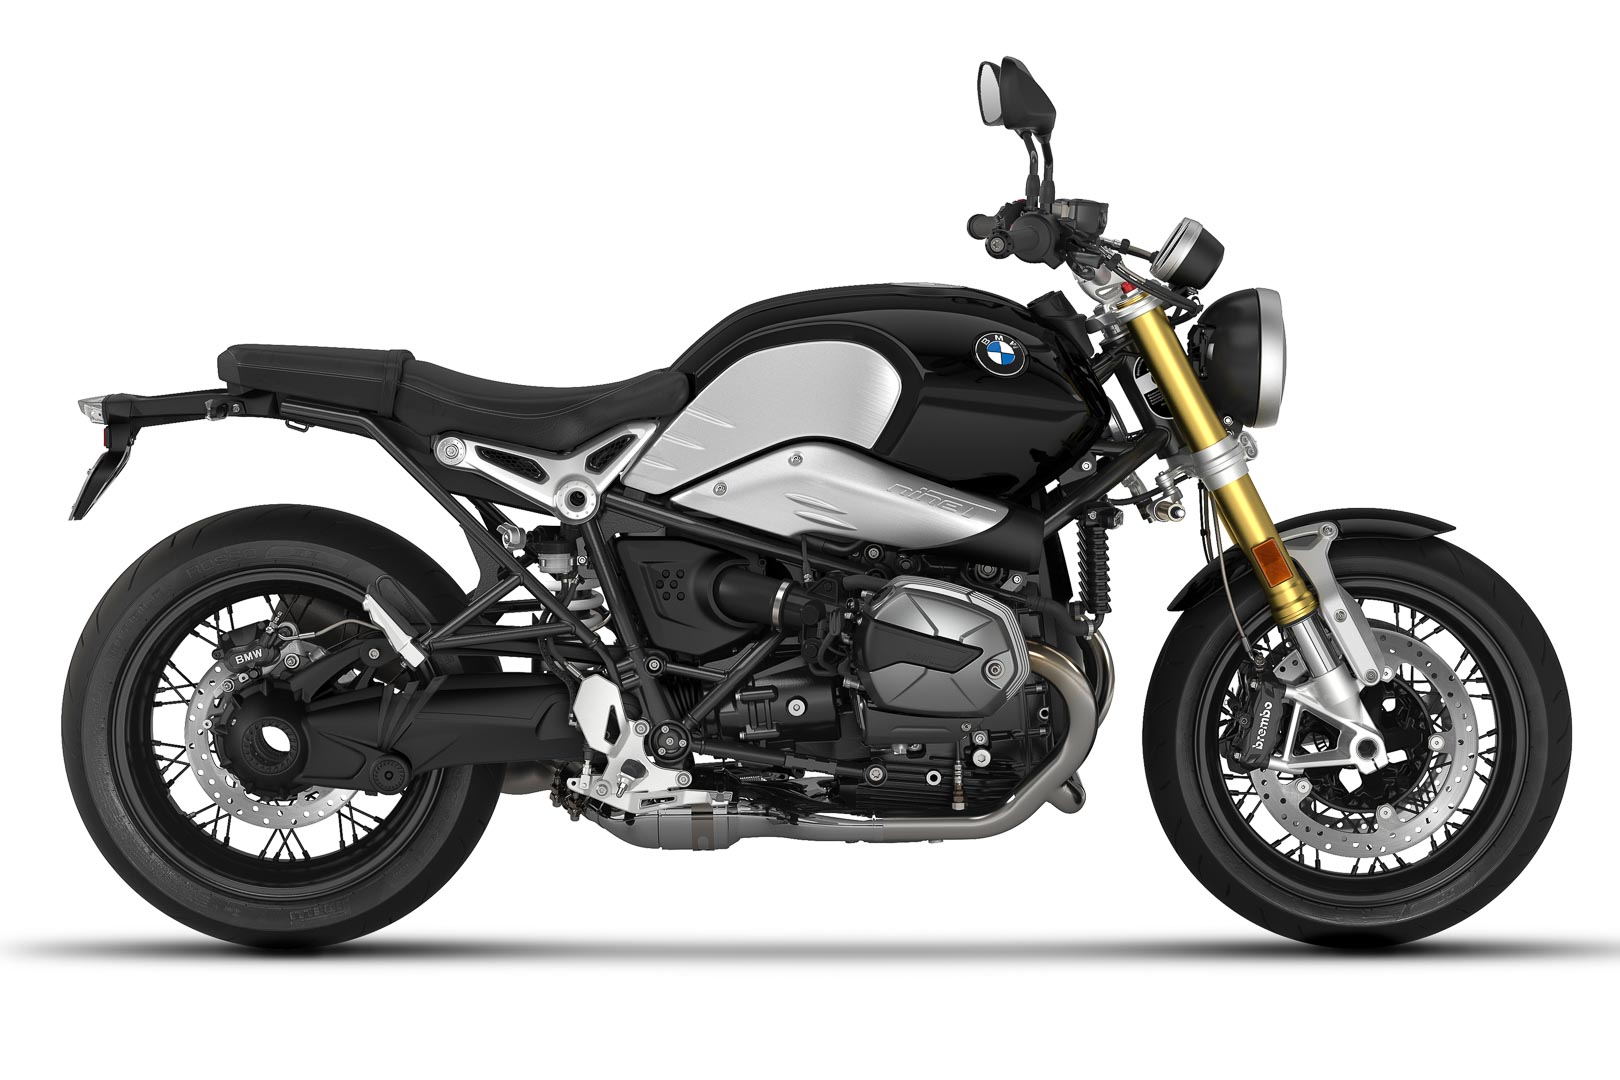 2021 BMW R nineT Lineup First Look: MSRP